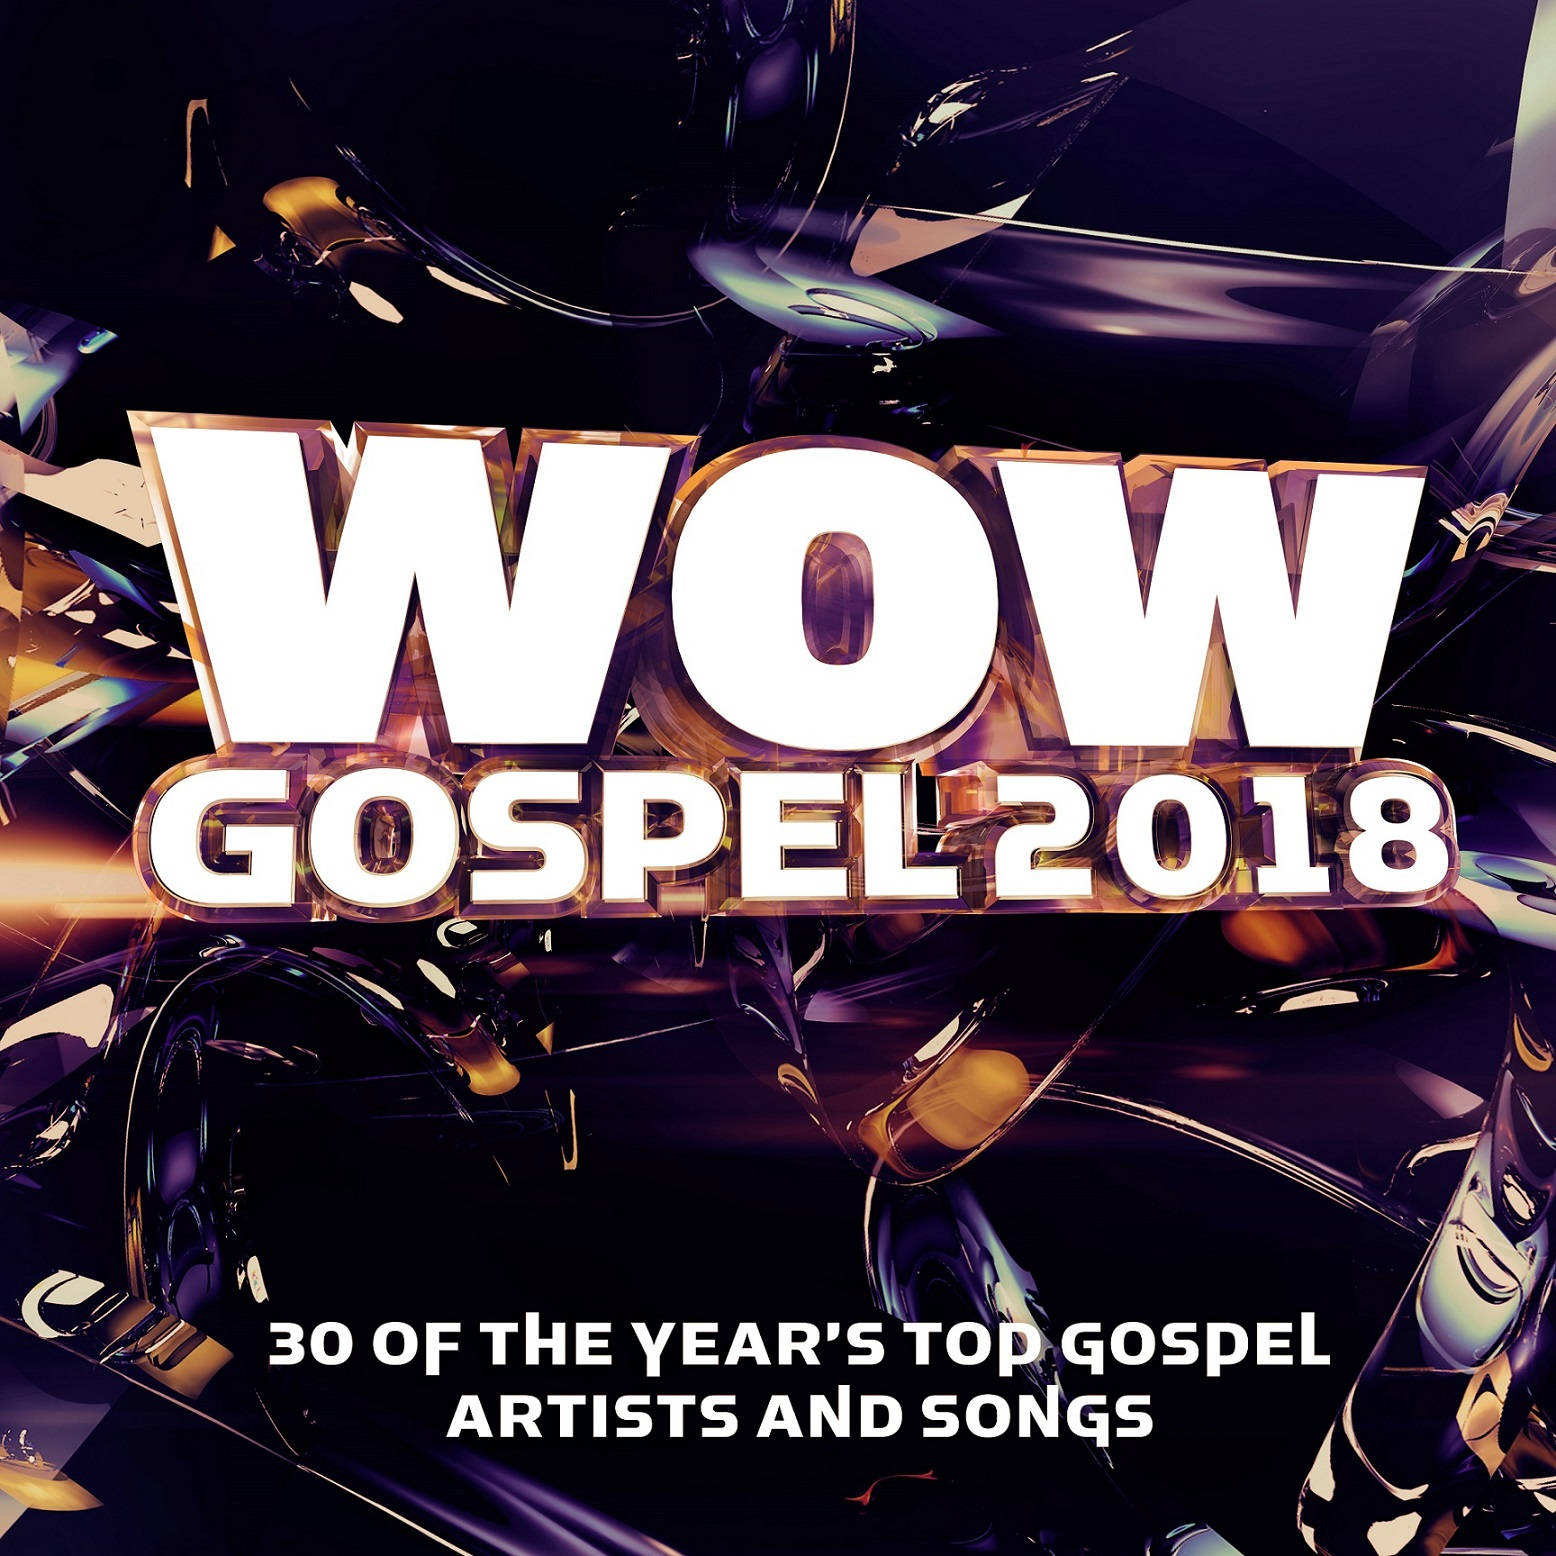 WOW GOSPEL 2018 Makes #1 Debut